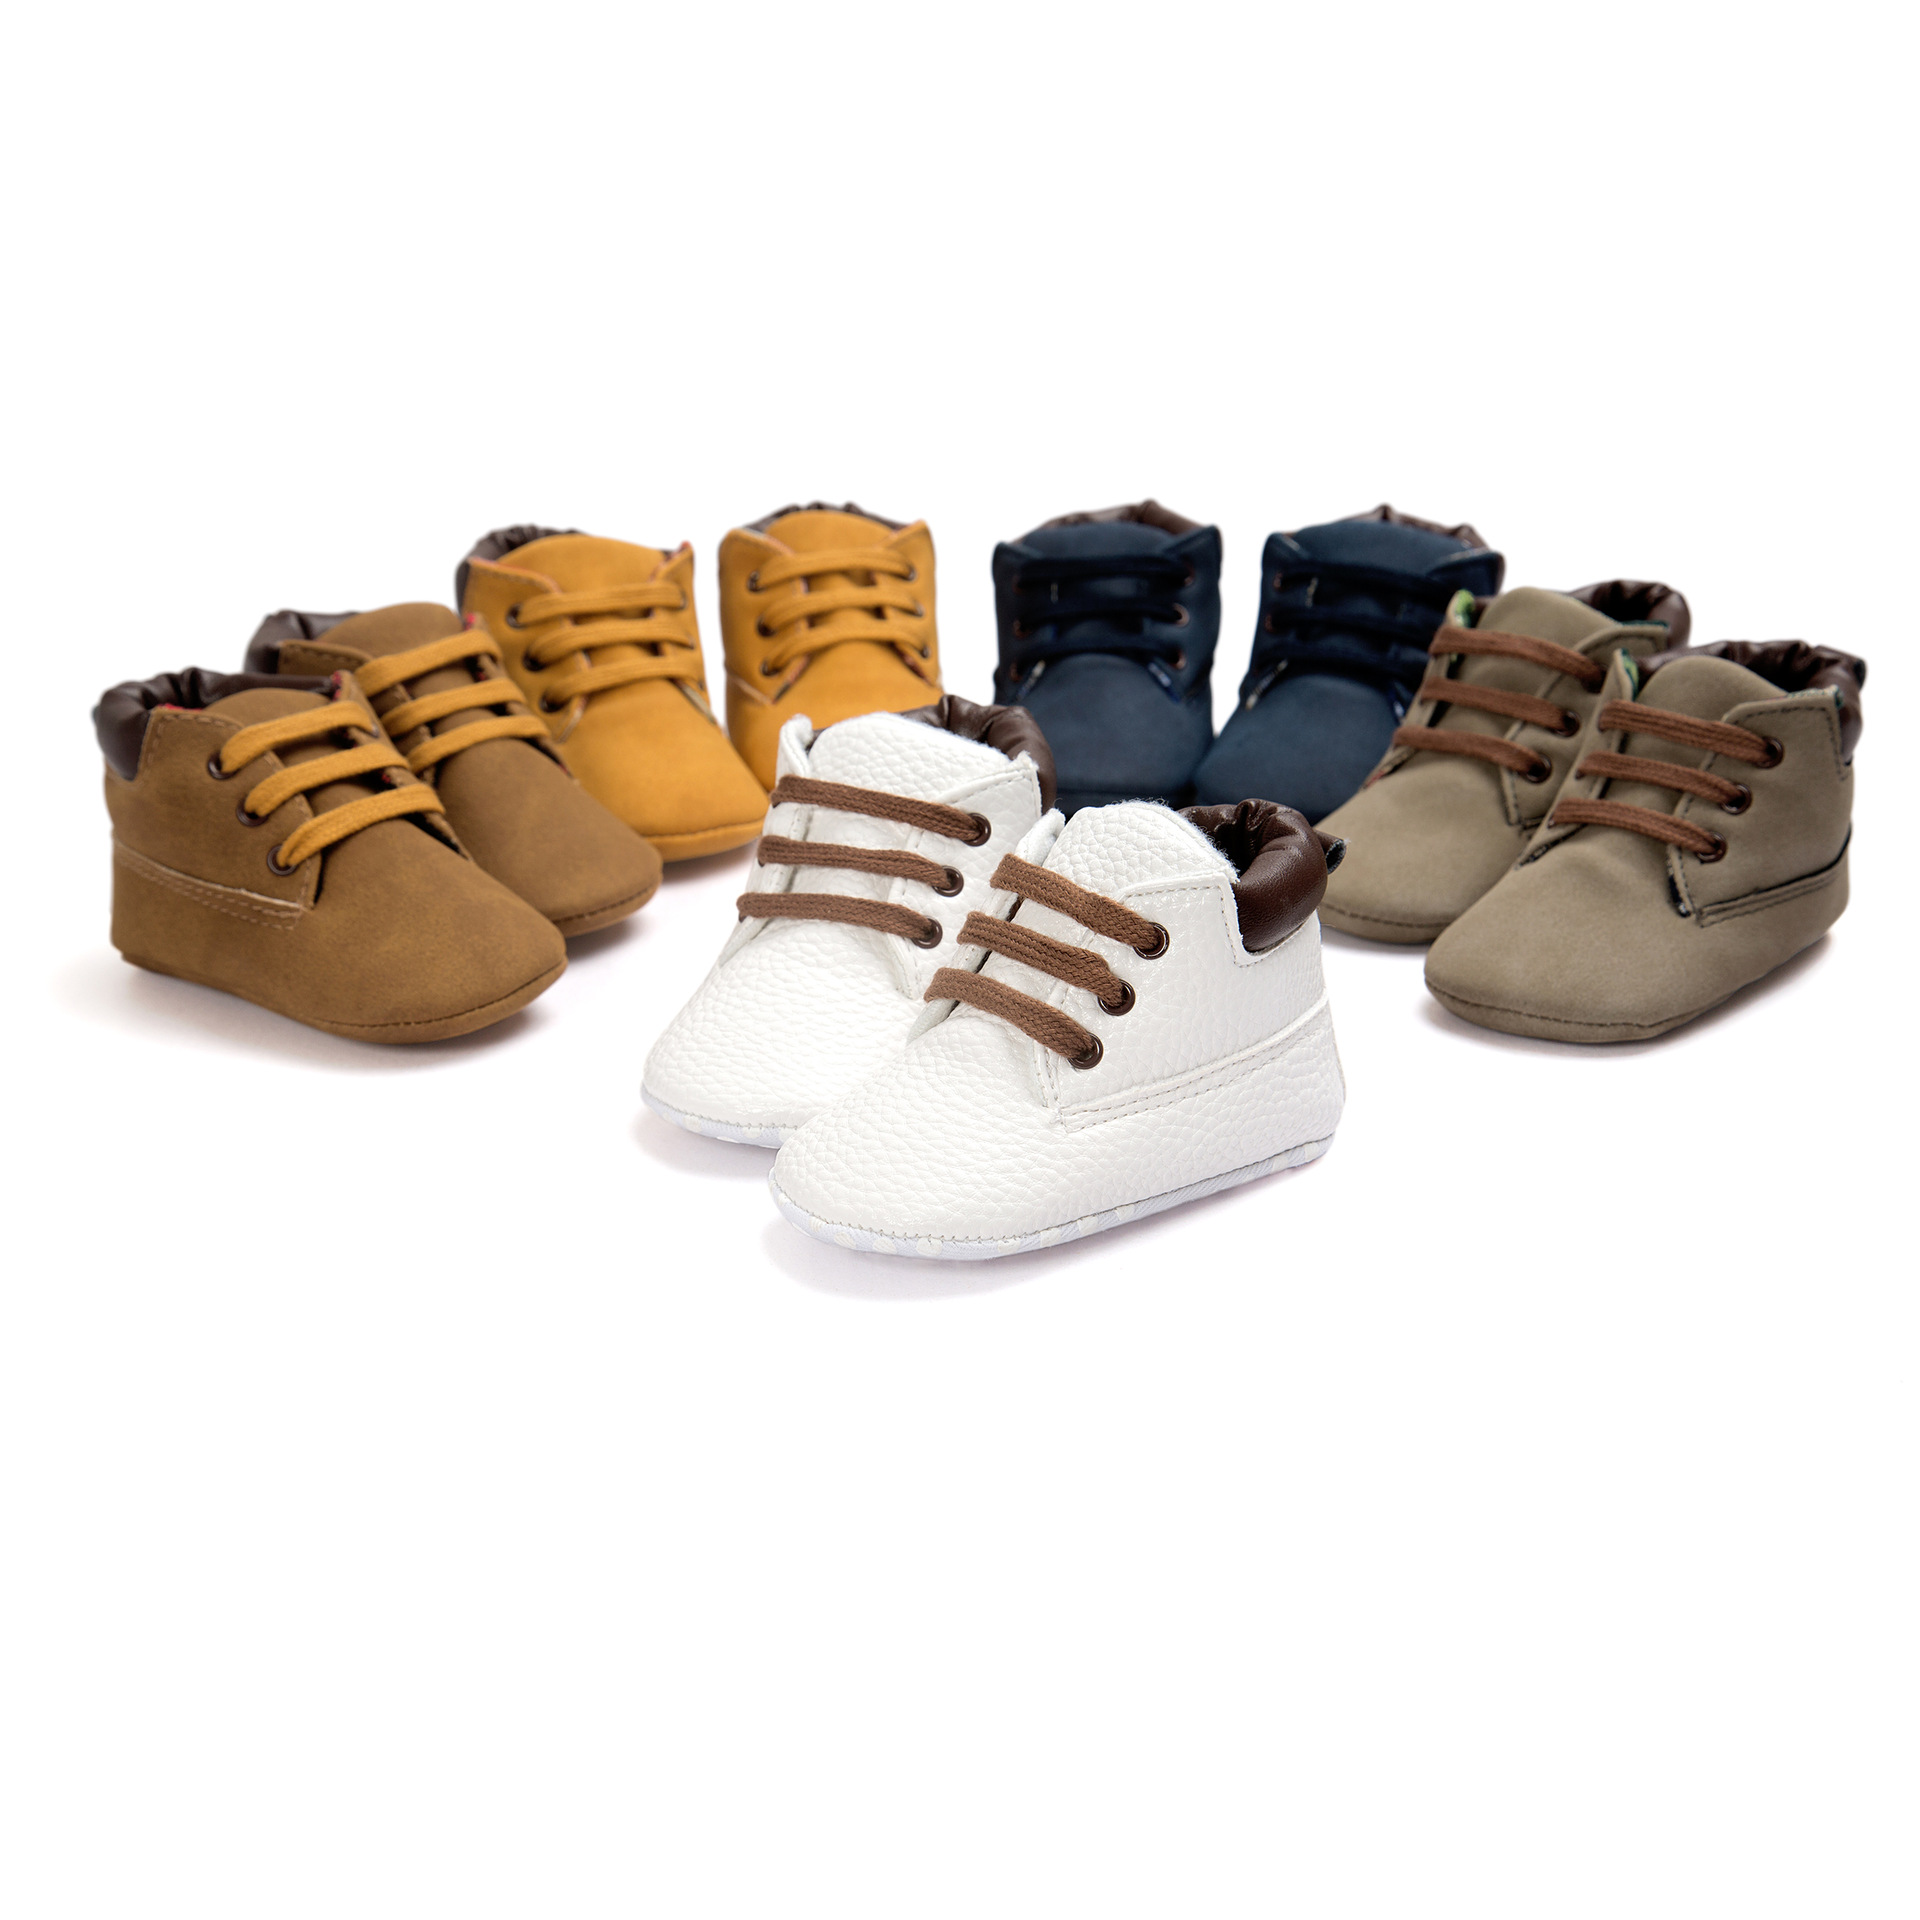 2019 Fashion Newborn Bebe Martin Boots Infant Baby Shoes First Walkers Baby Moccasins PU Leather Prewalkers Booties